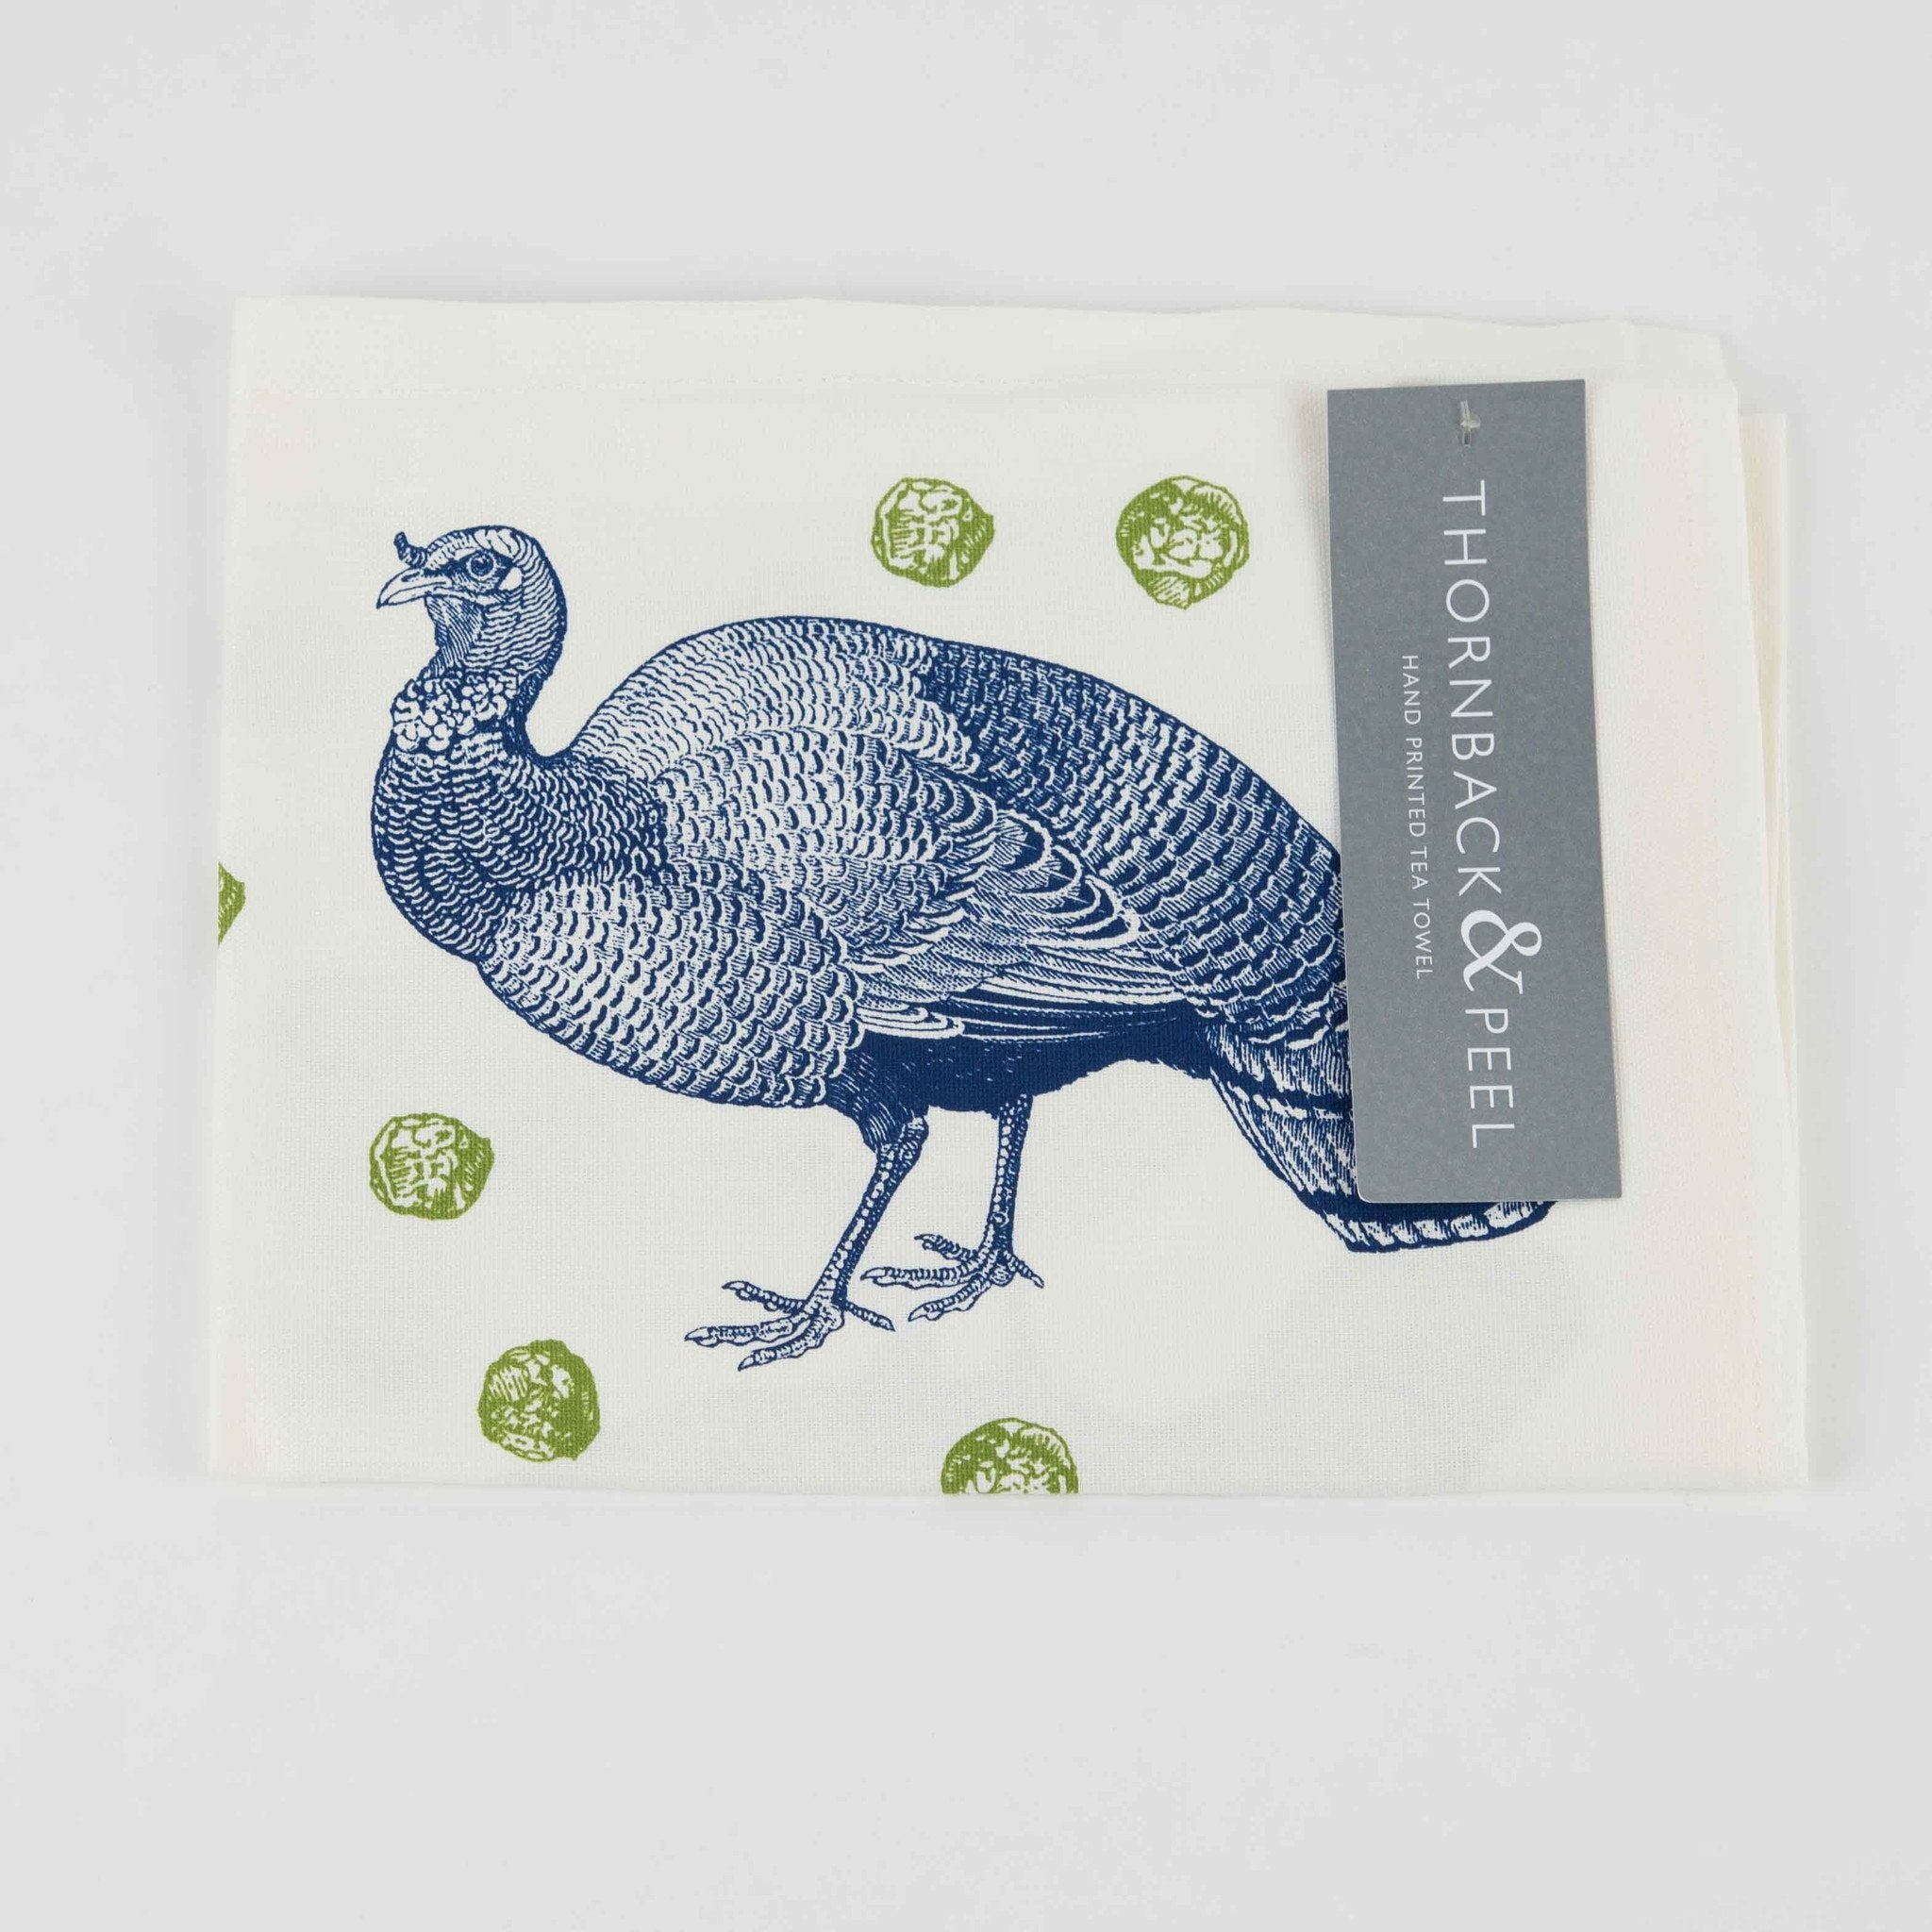 Thornback & Peel Turkey and Sprout Tea Towel